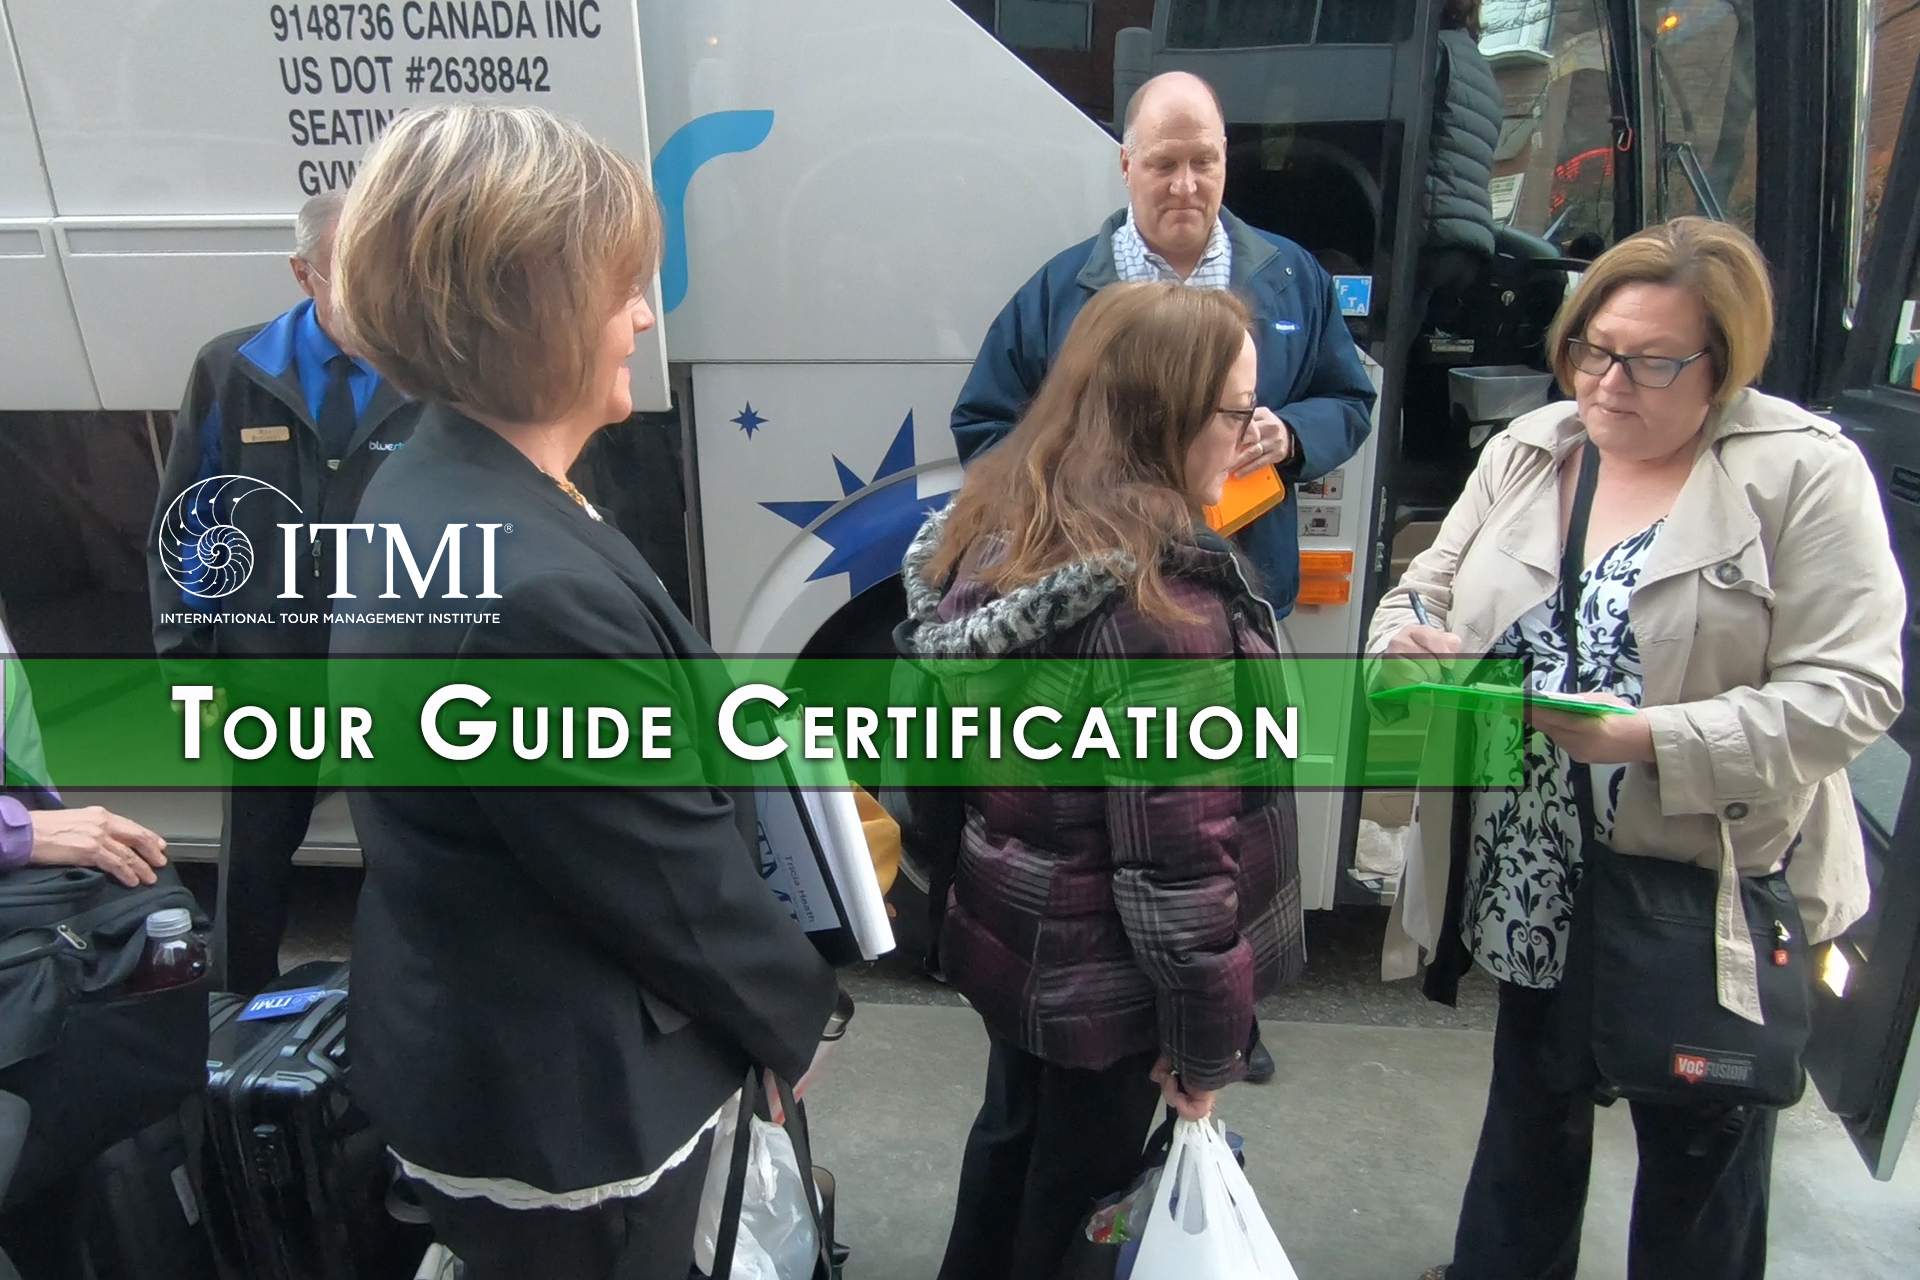 Tour Guide Certification thumb